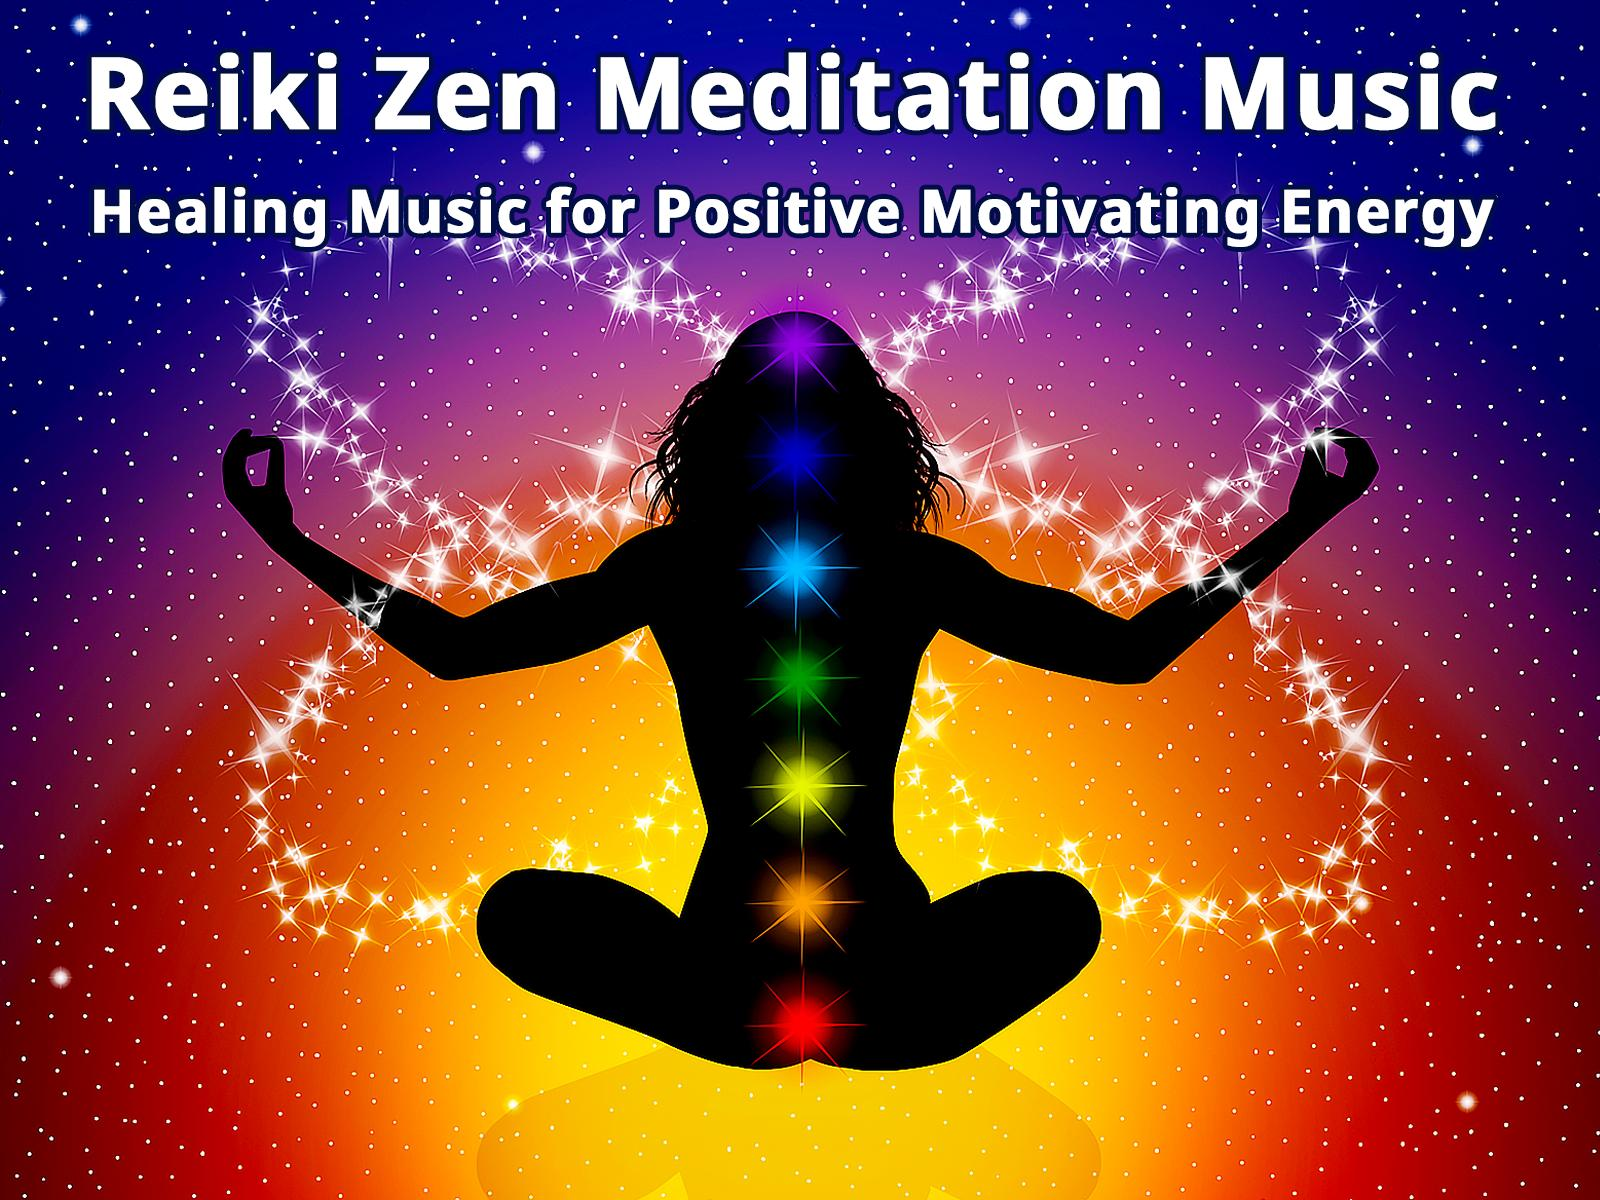 Reiki Zen Meditation Music: Healing Music for Positive Motivating